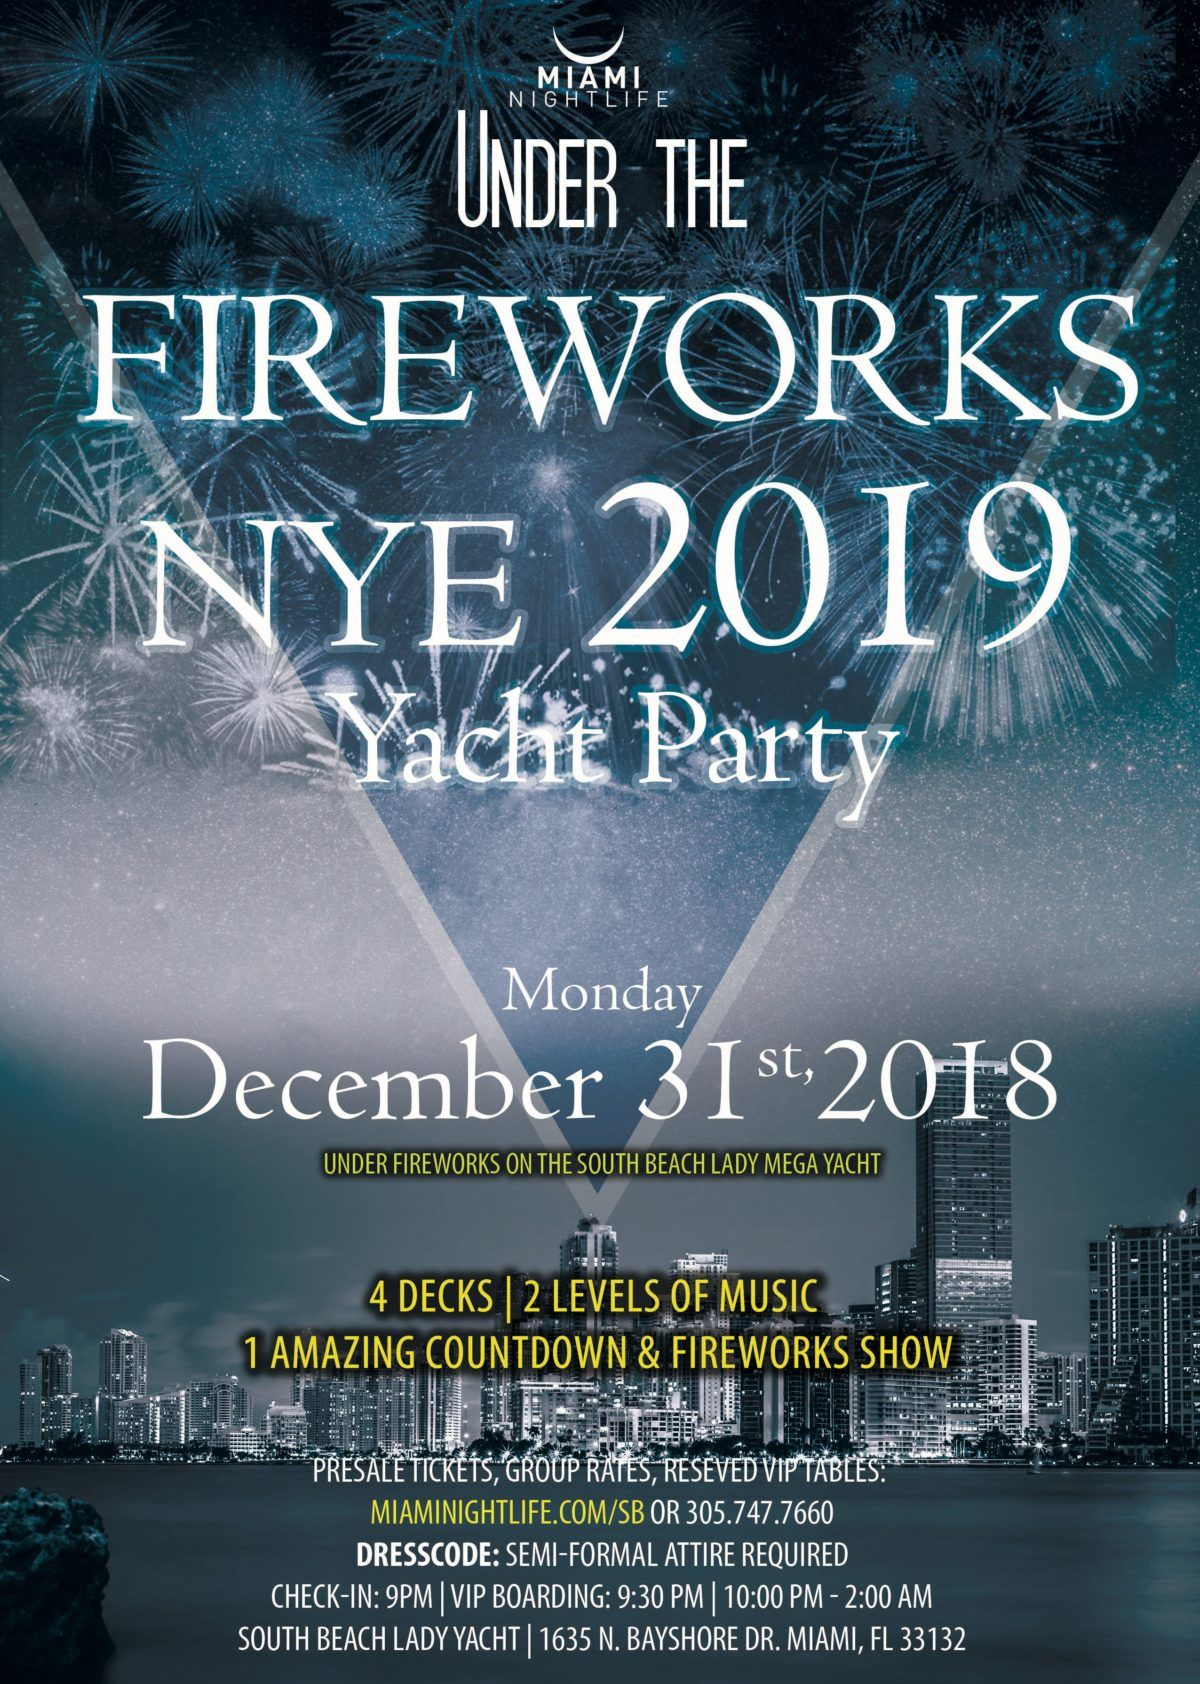 Miami Under the Fireworks Yacht Party New Year's Eve 2019